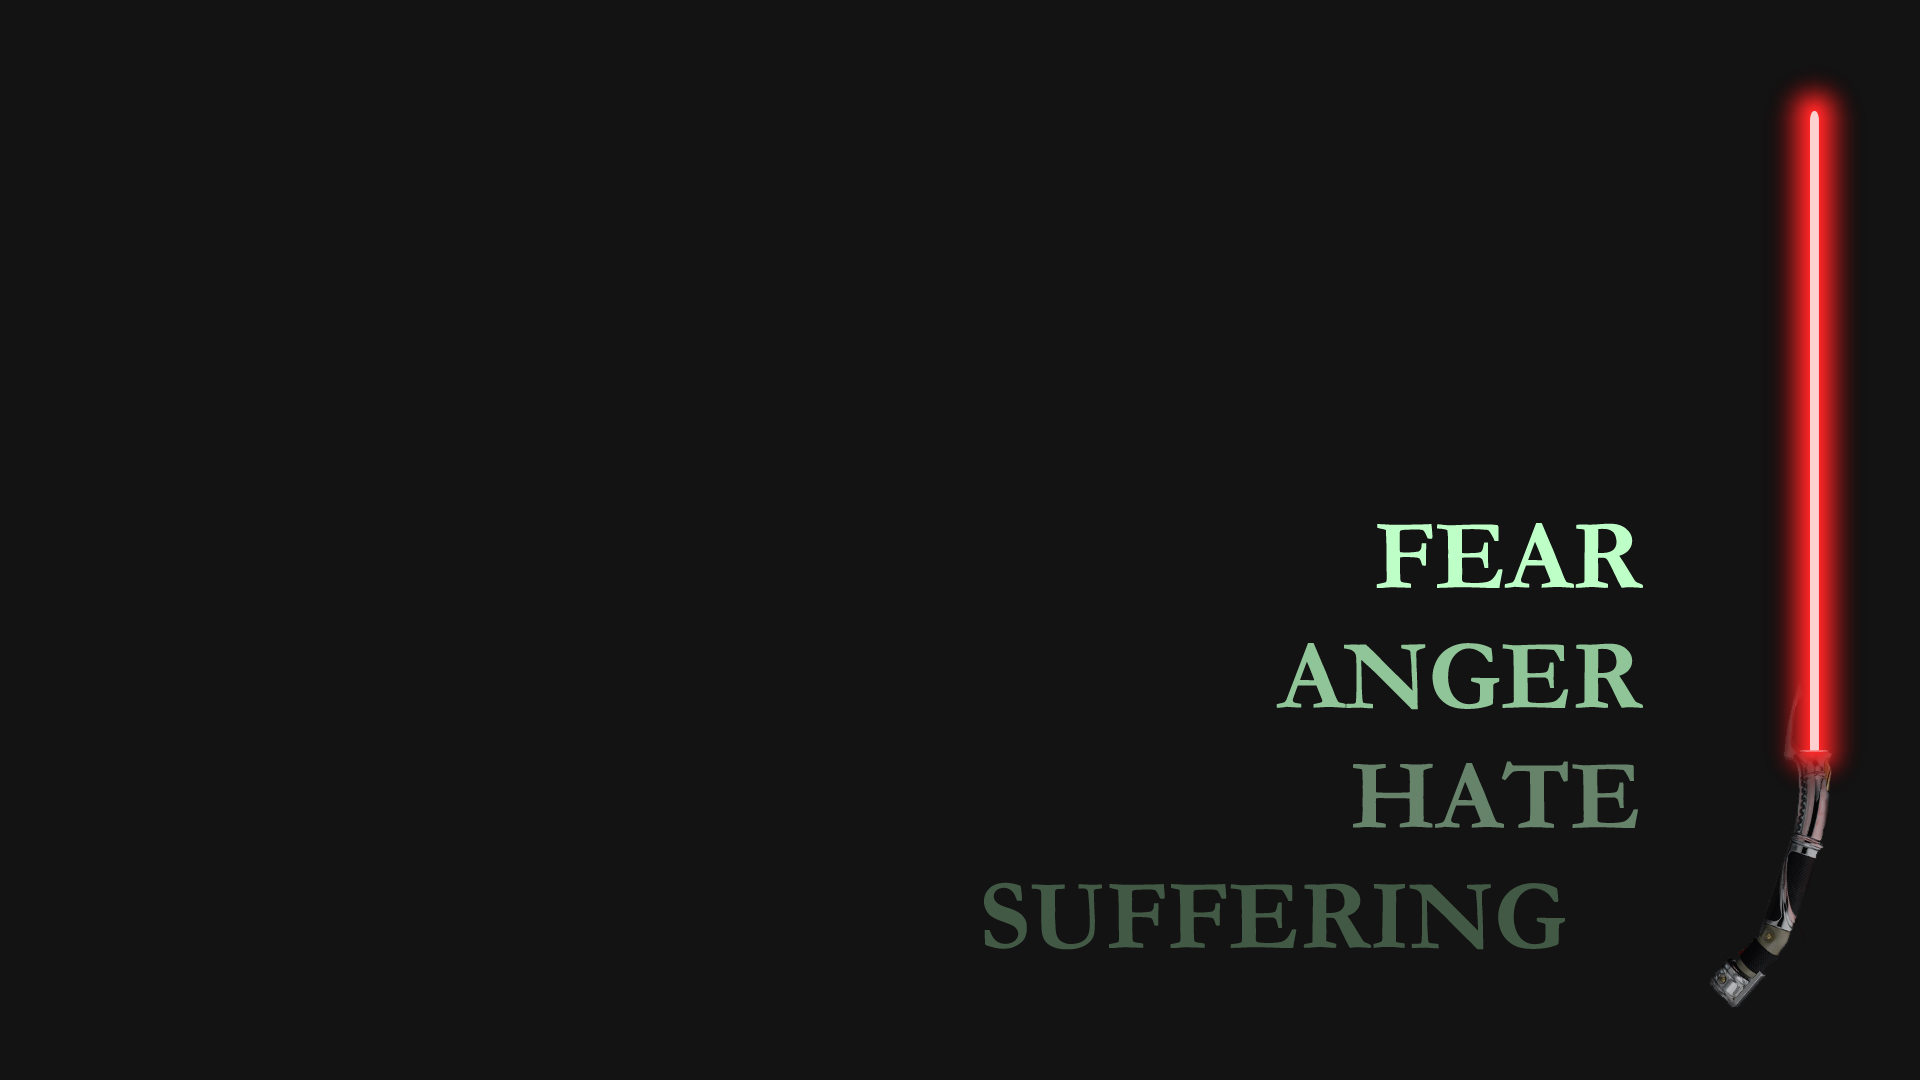 Star Wars Fear Anger Hate Suffering Lightsaber dark wallpaper 1920x1080